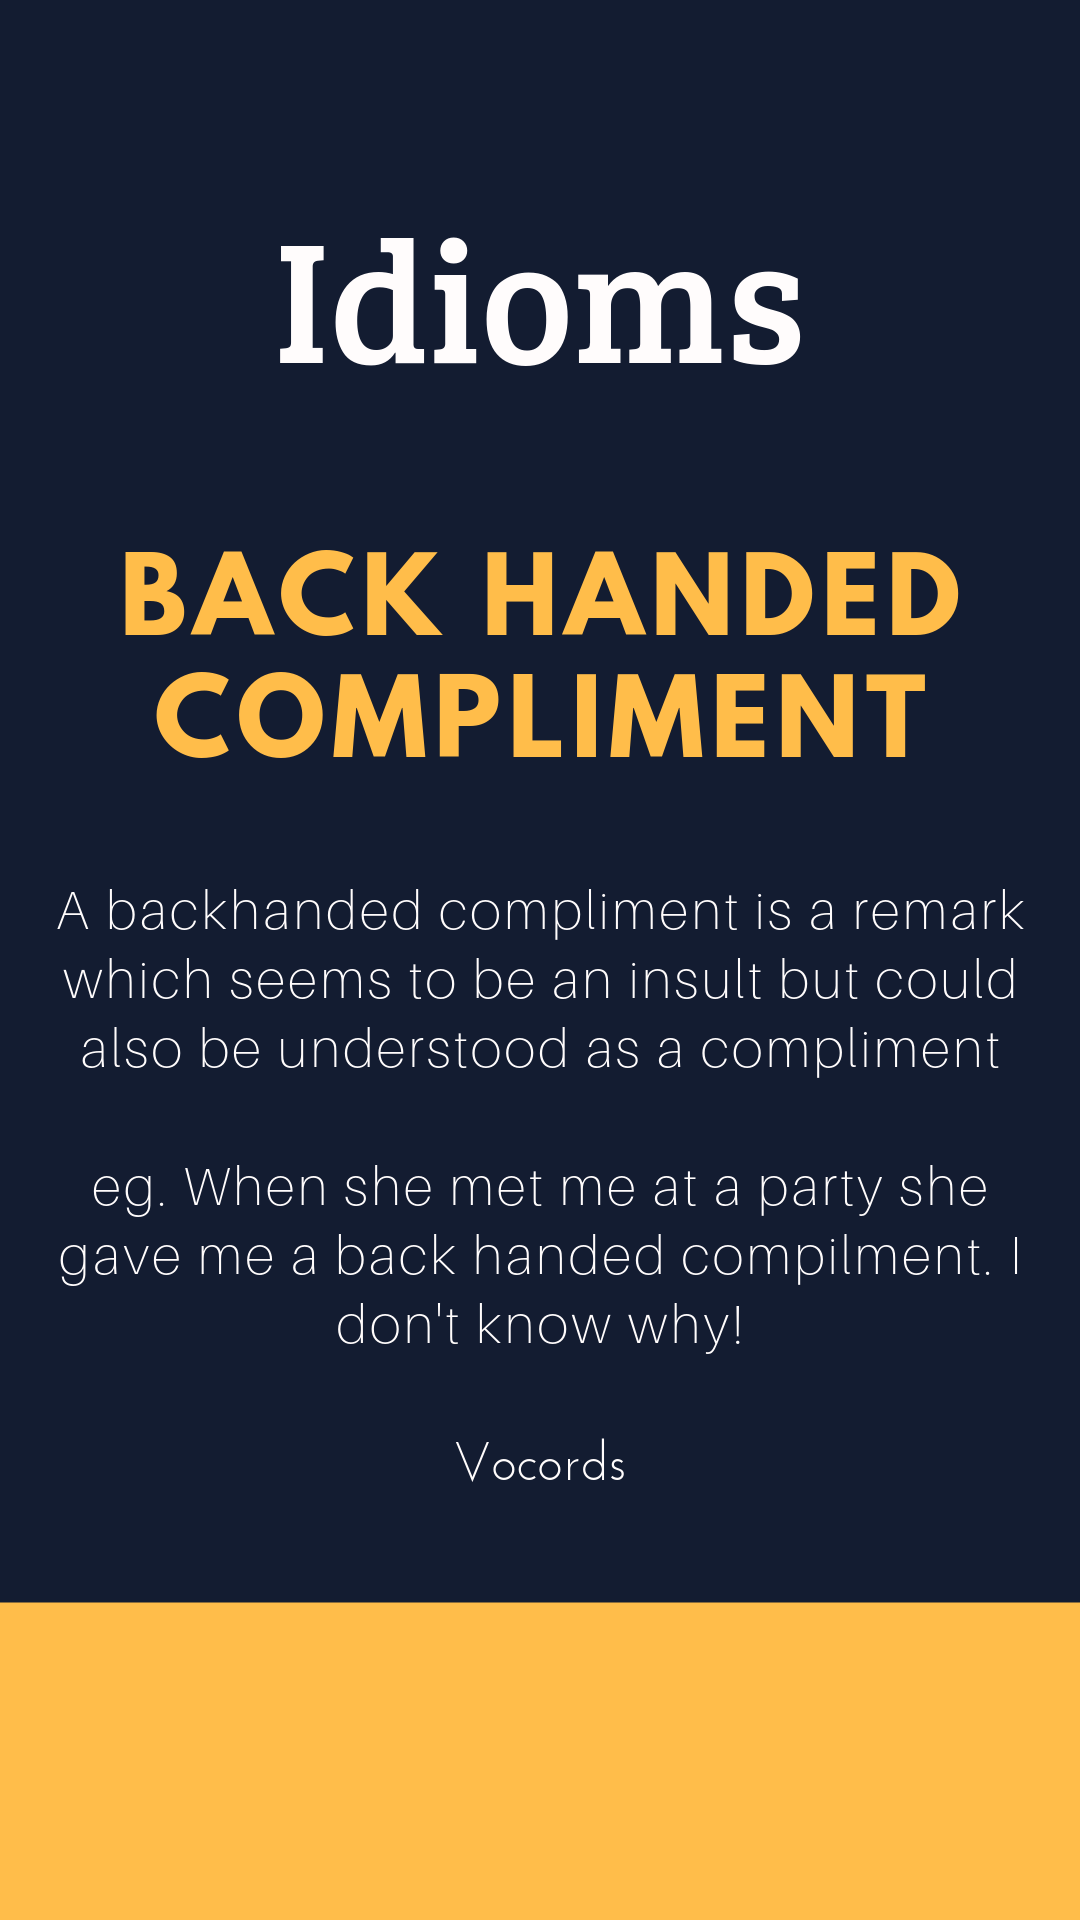 A Compliment Which Seems To Be An Insult As Well As A